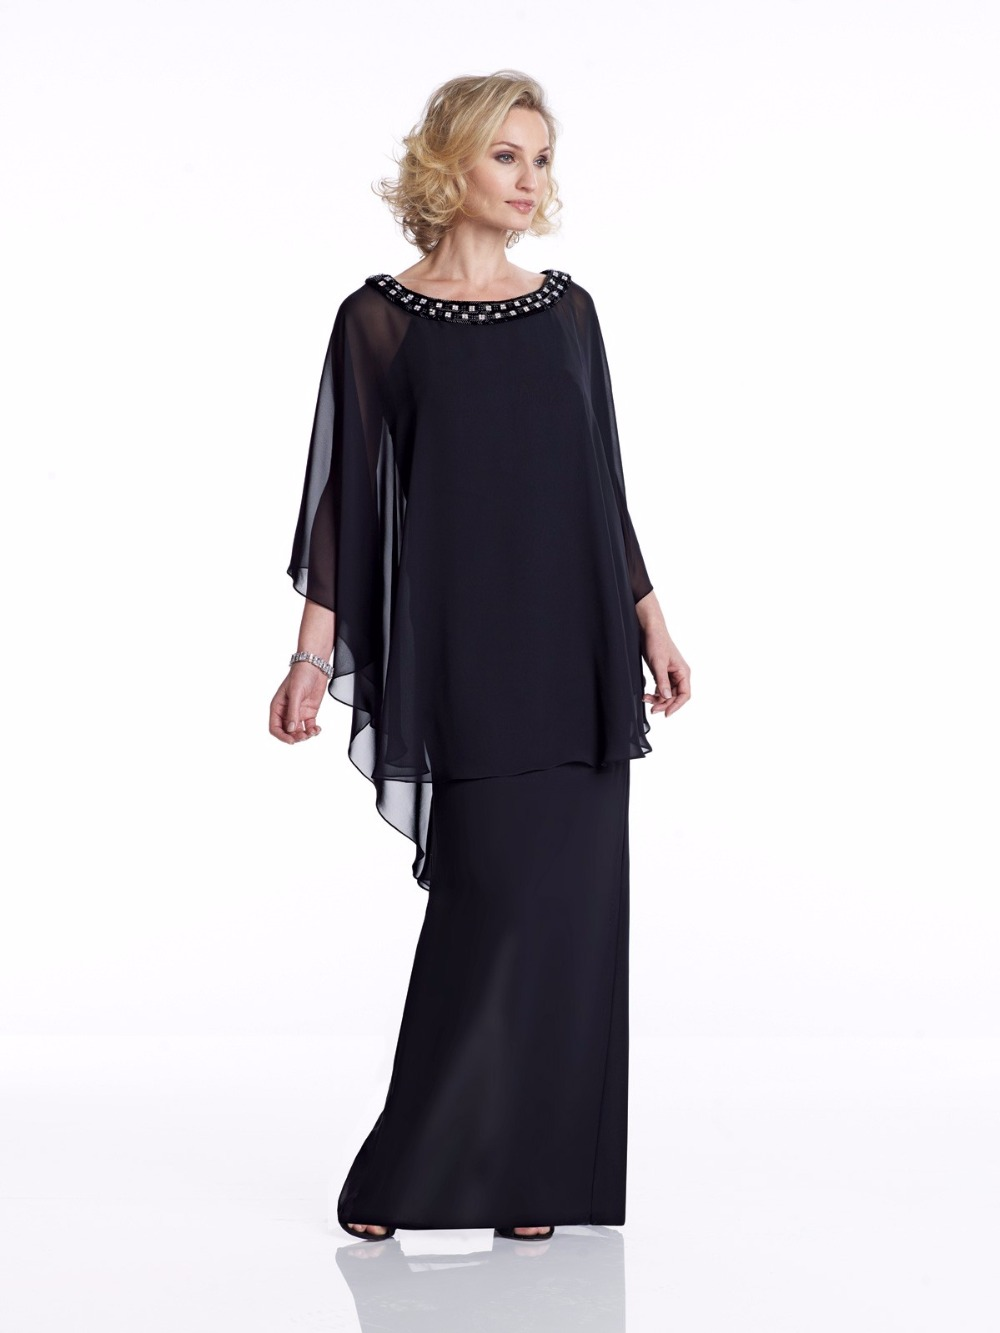 2019 Navy Blue Chiffon Sheath Mother Of The Bride Dresses Cape Floor Length Bride Mother's Dresses For Wedding Evening Wear